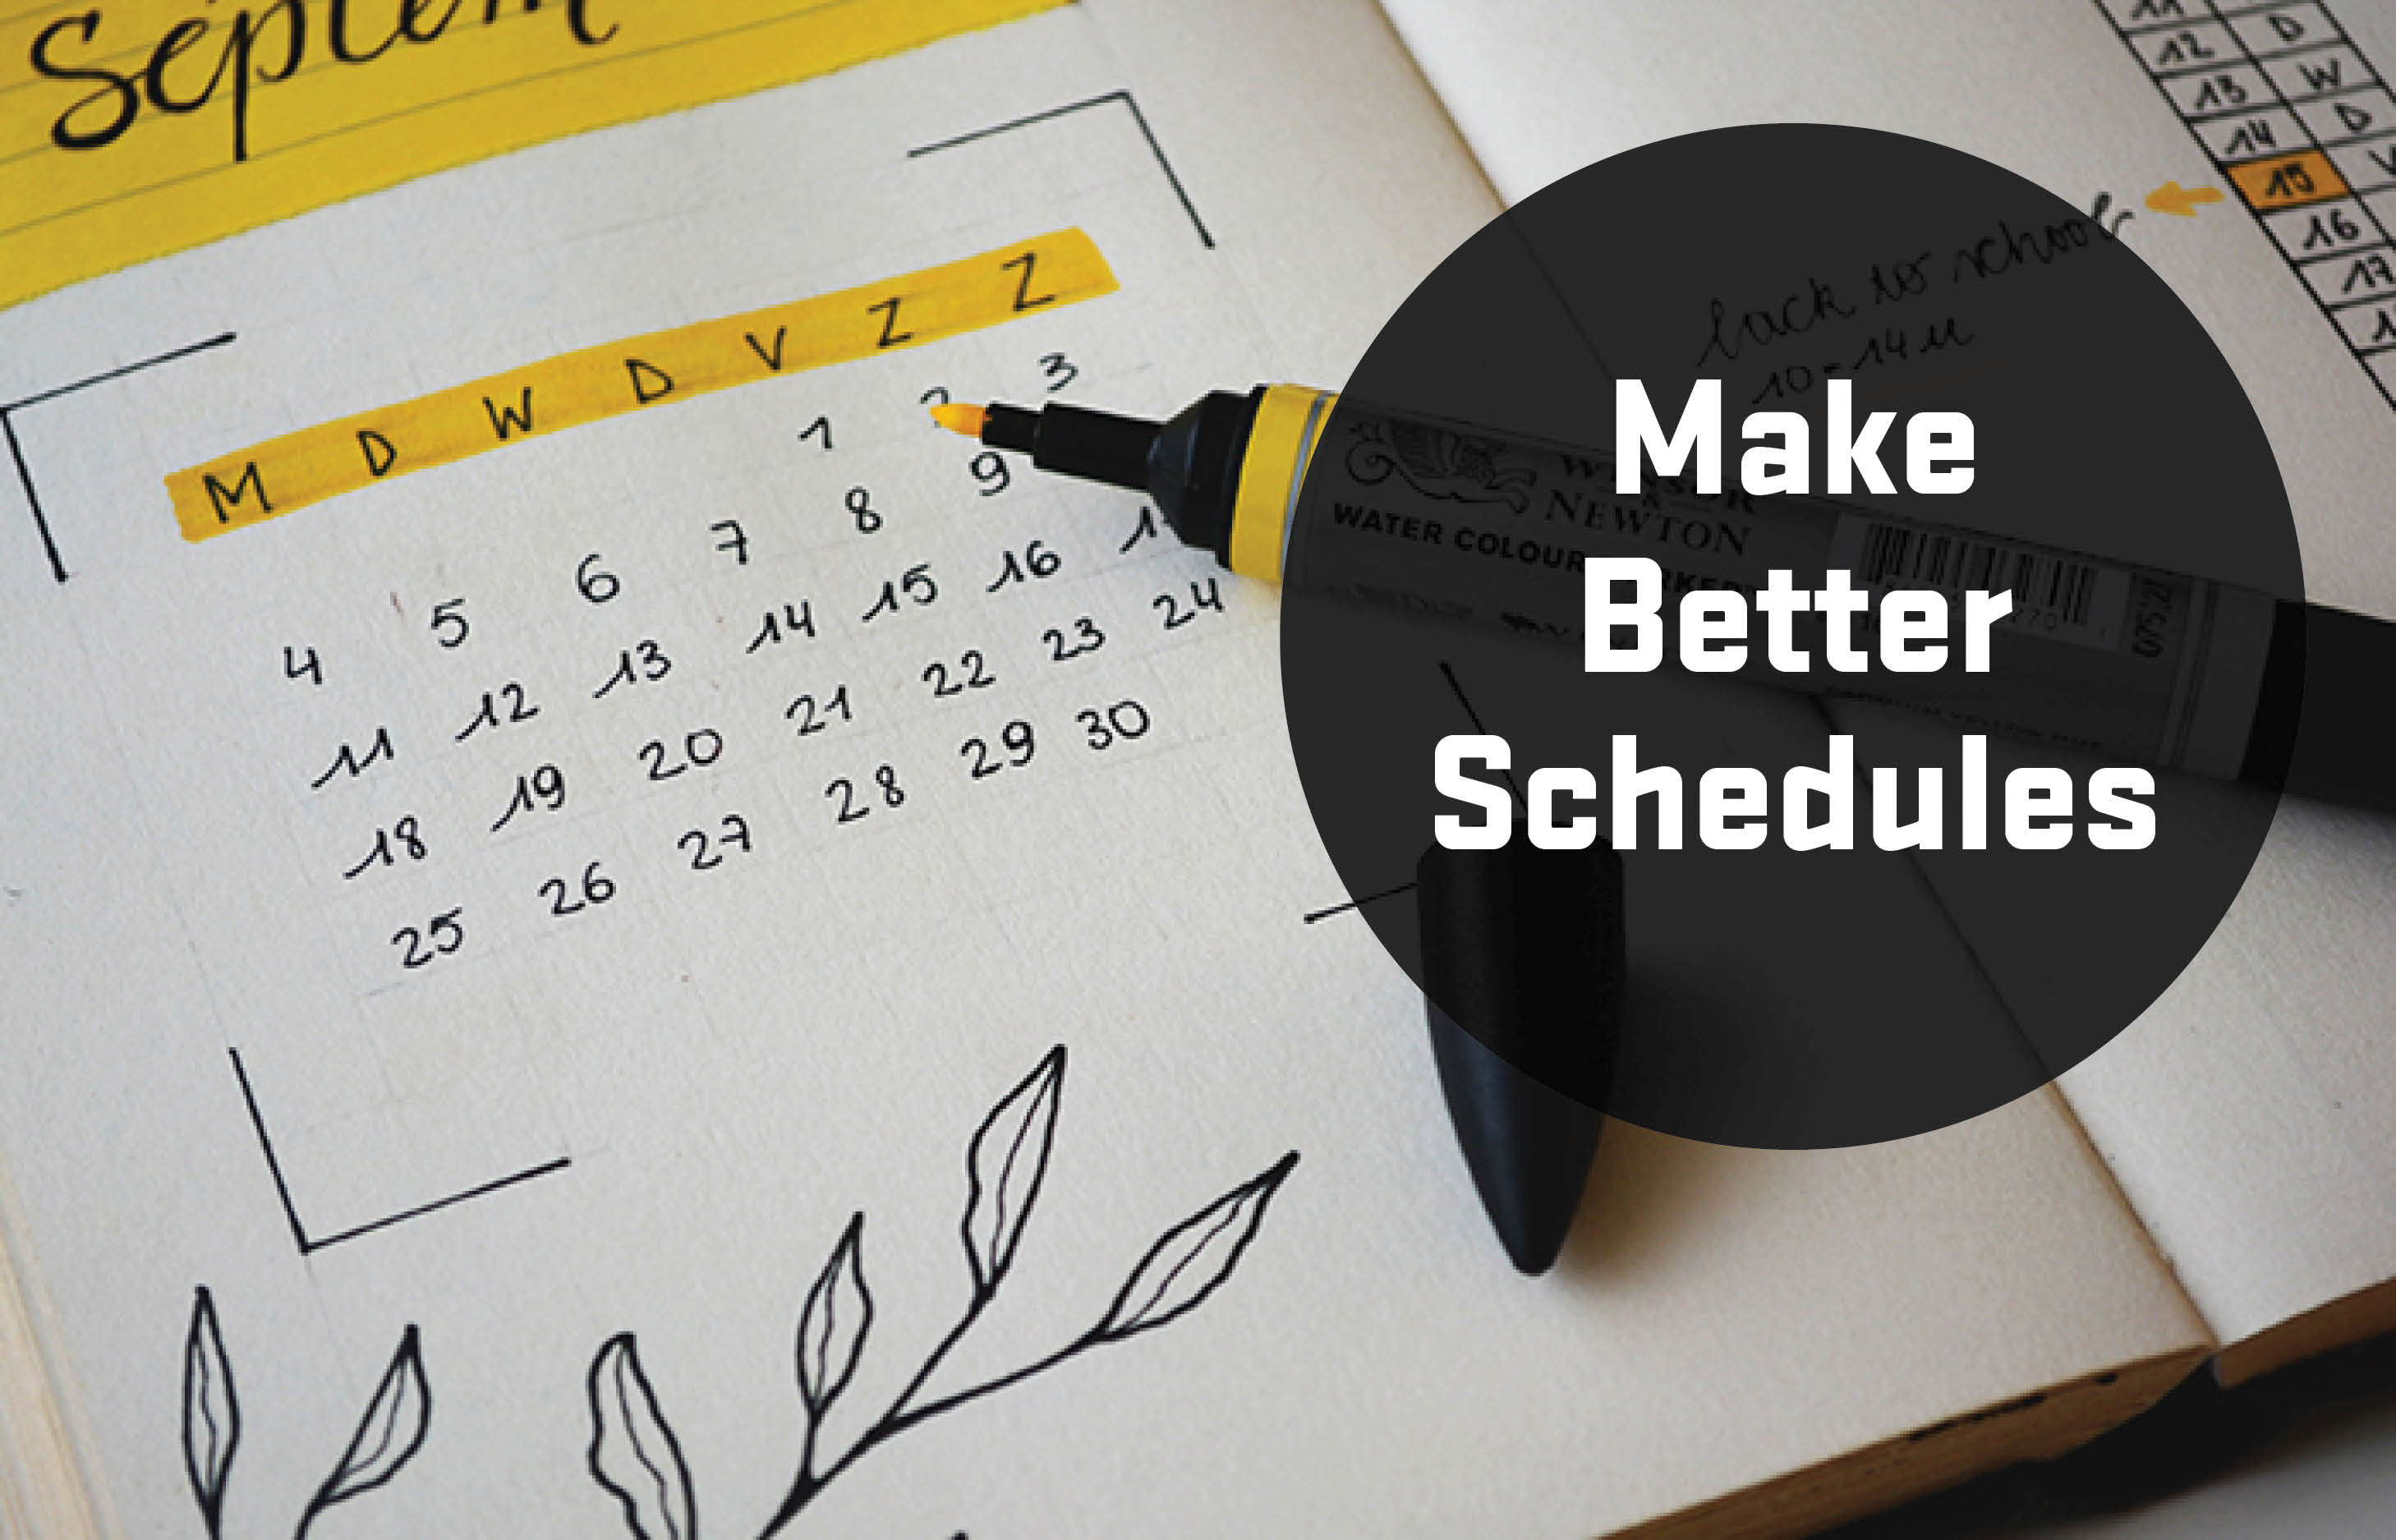 Make better schedules